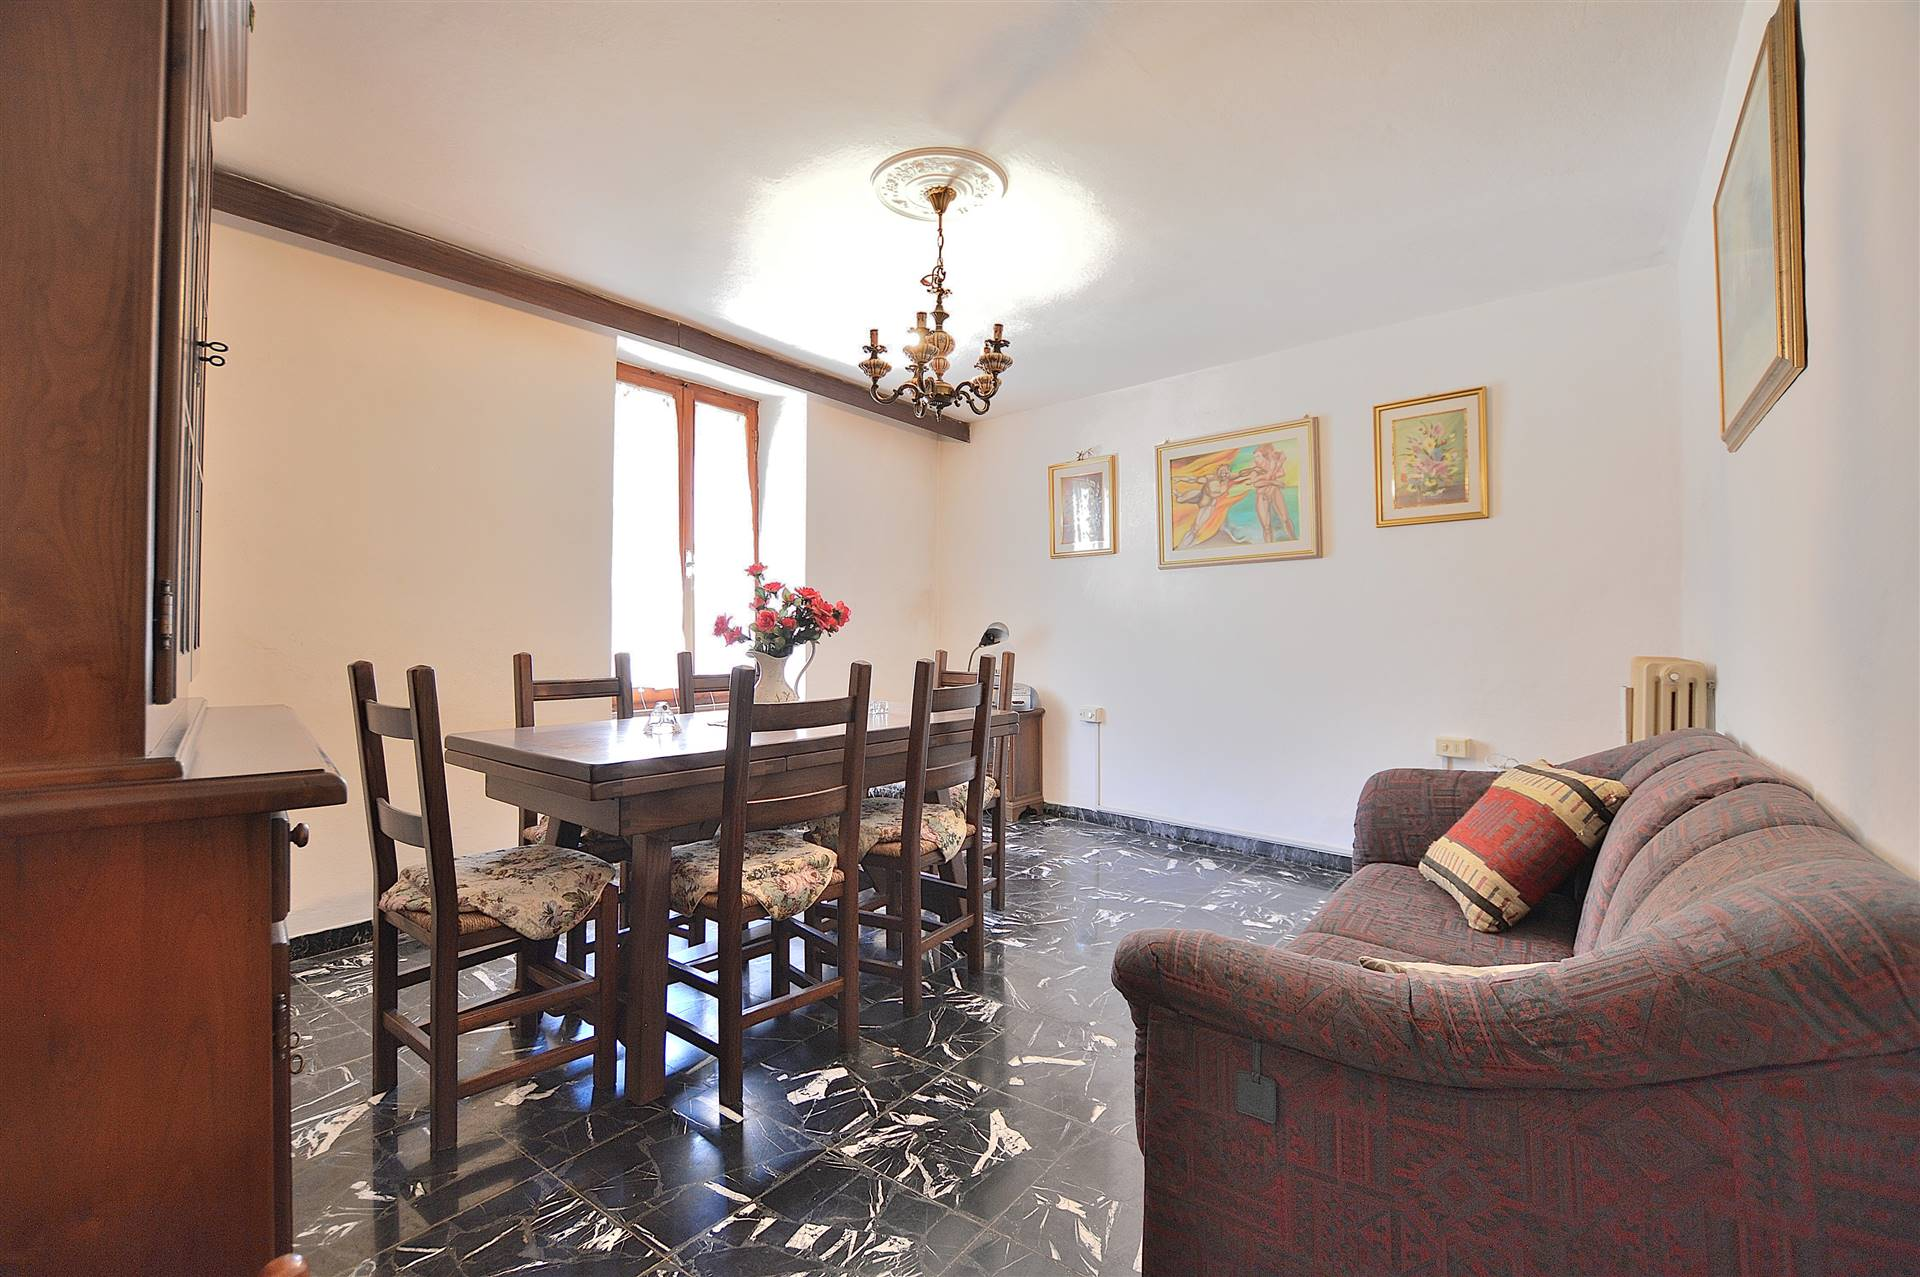 ASCIANO, Apartment for sale, Habitable, Heating Individual heating system, Energetic class: G, Epi: 175 kwh/m2 year, placed at 1° on 2, composed by: